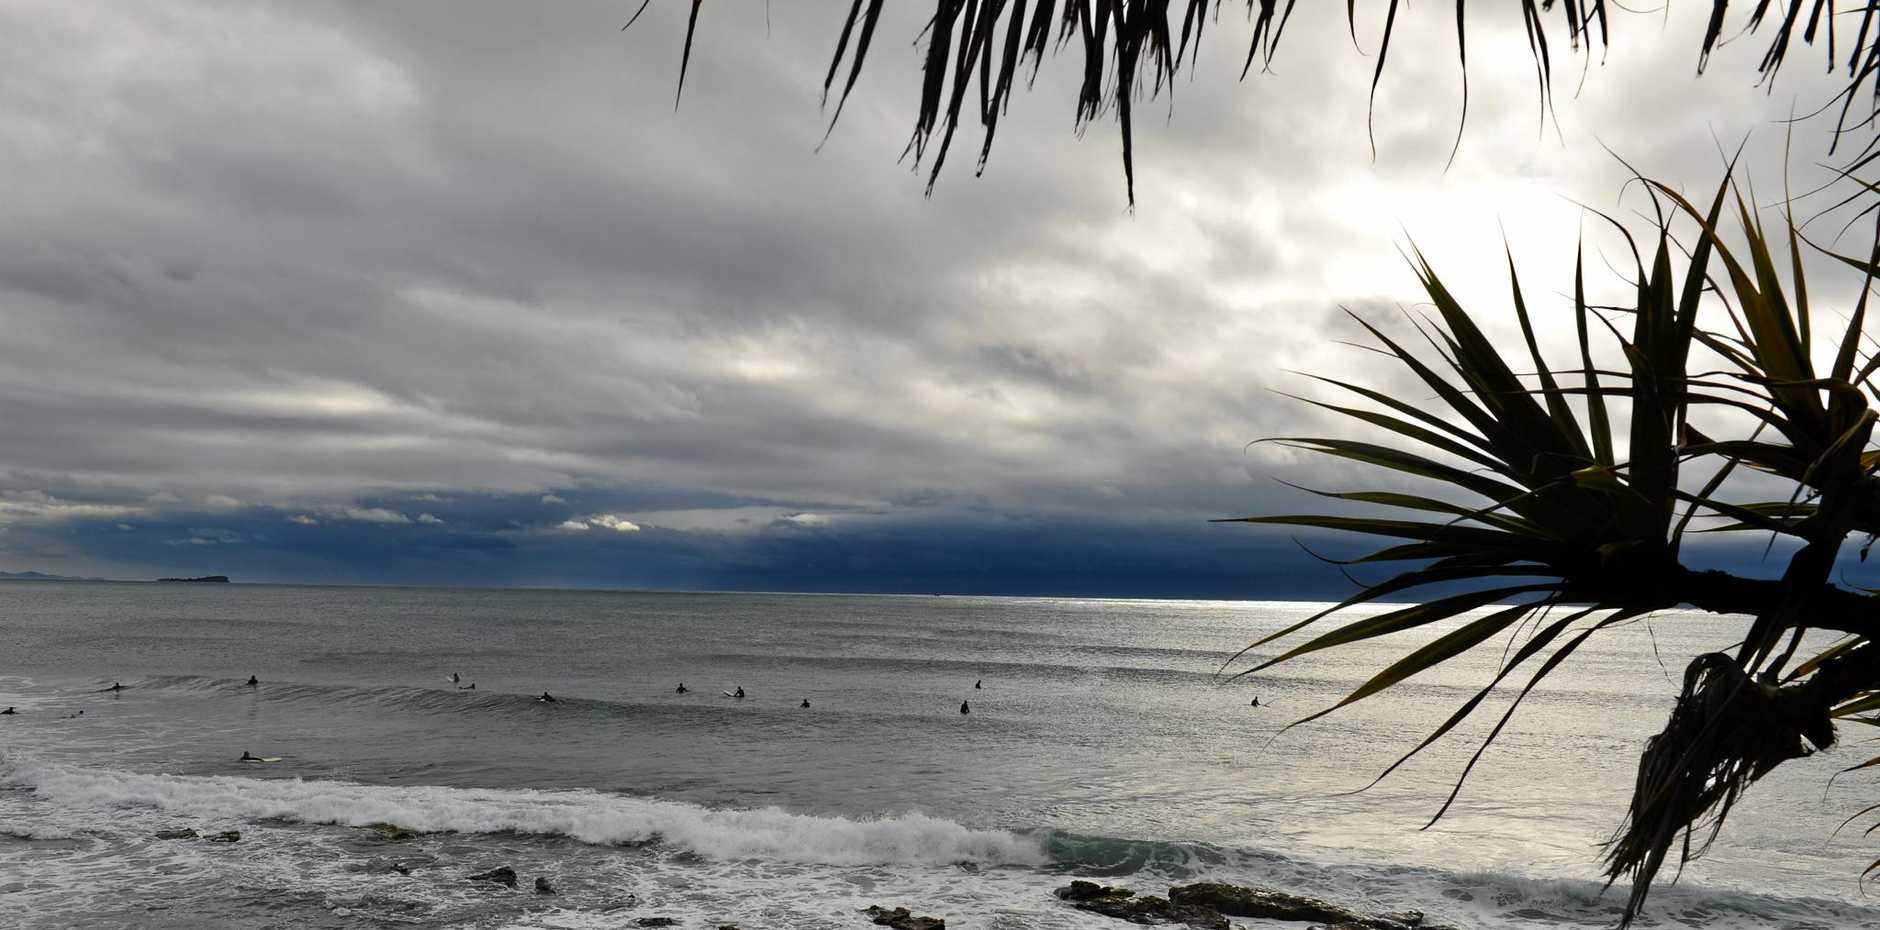 EXPECT more gloomy weather like this at Alexandra Headland through to at least Sunday according to the weather bureau.